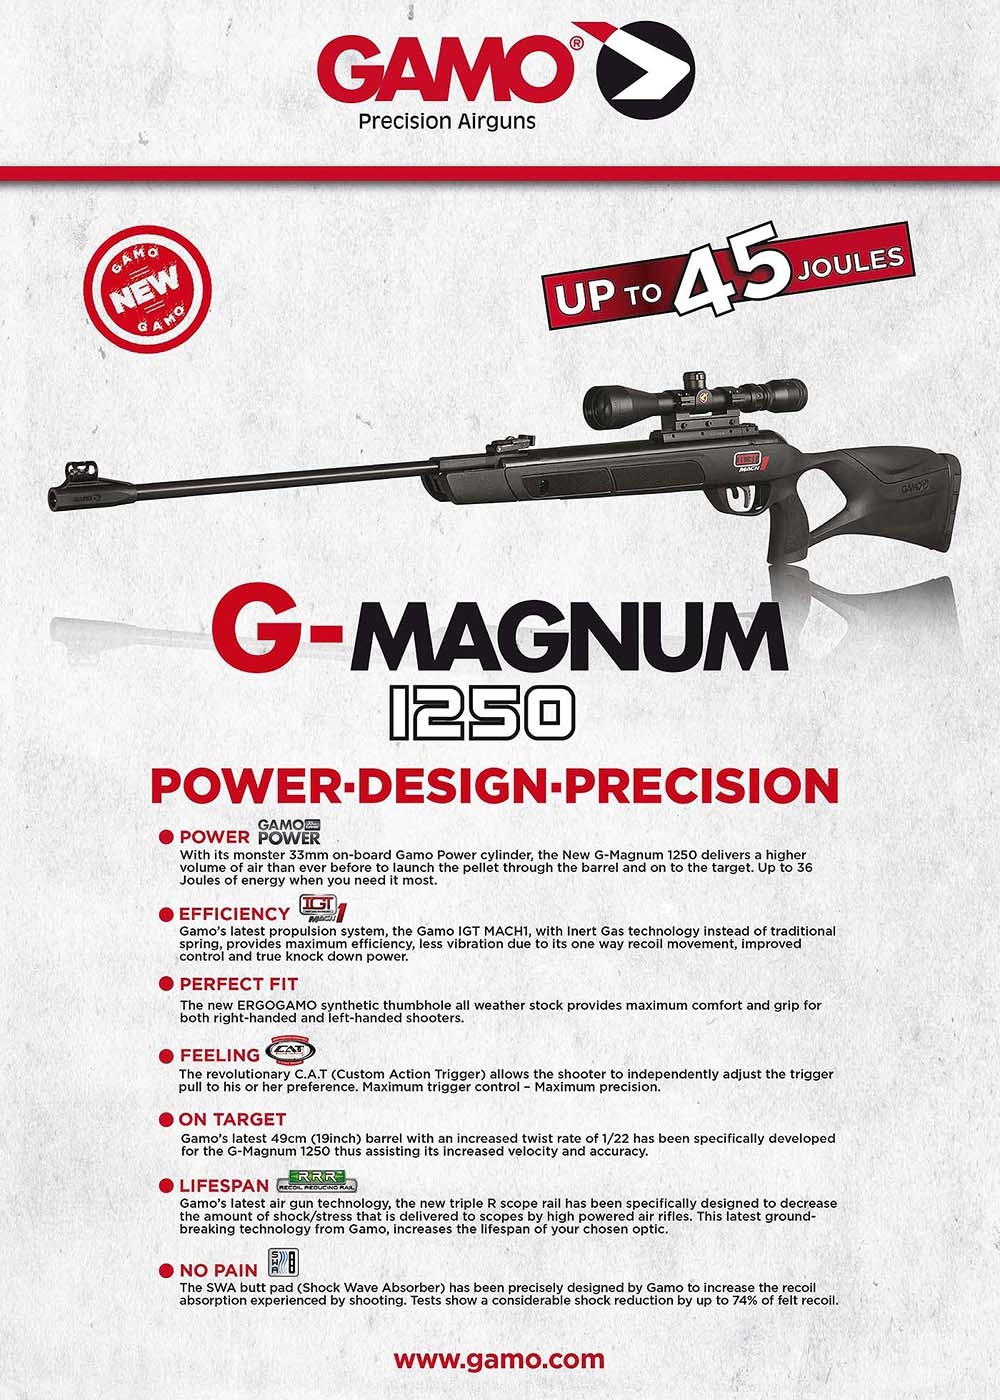 GAMO G-Magnum 1250 Air Rifle | GUNSweek com